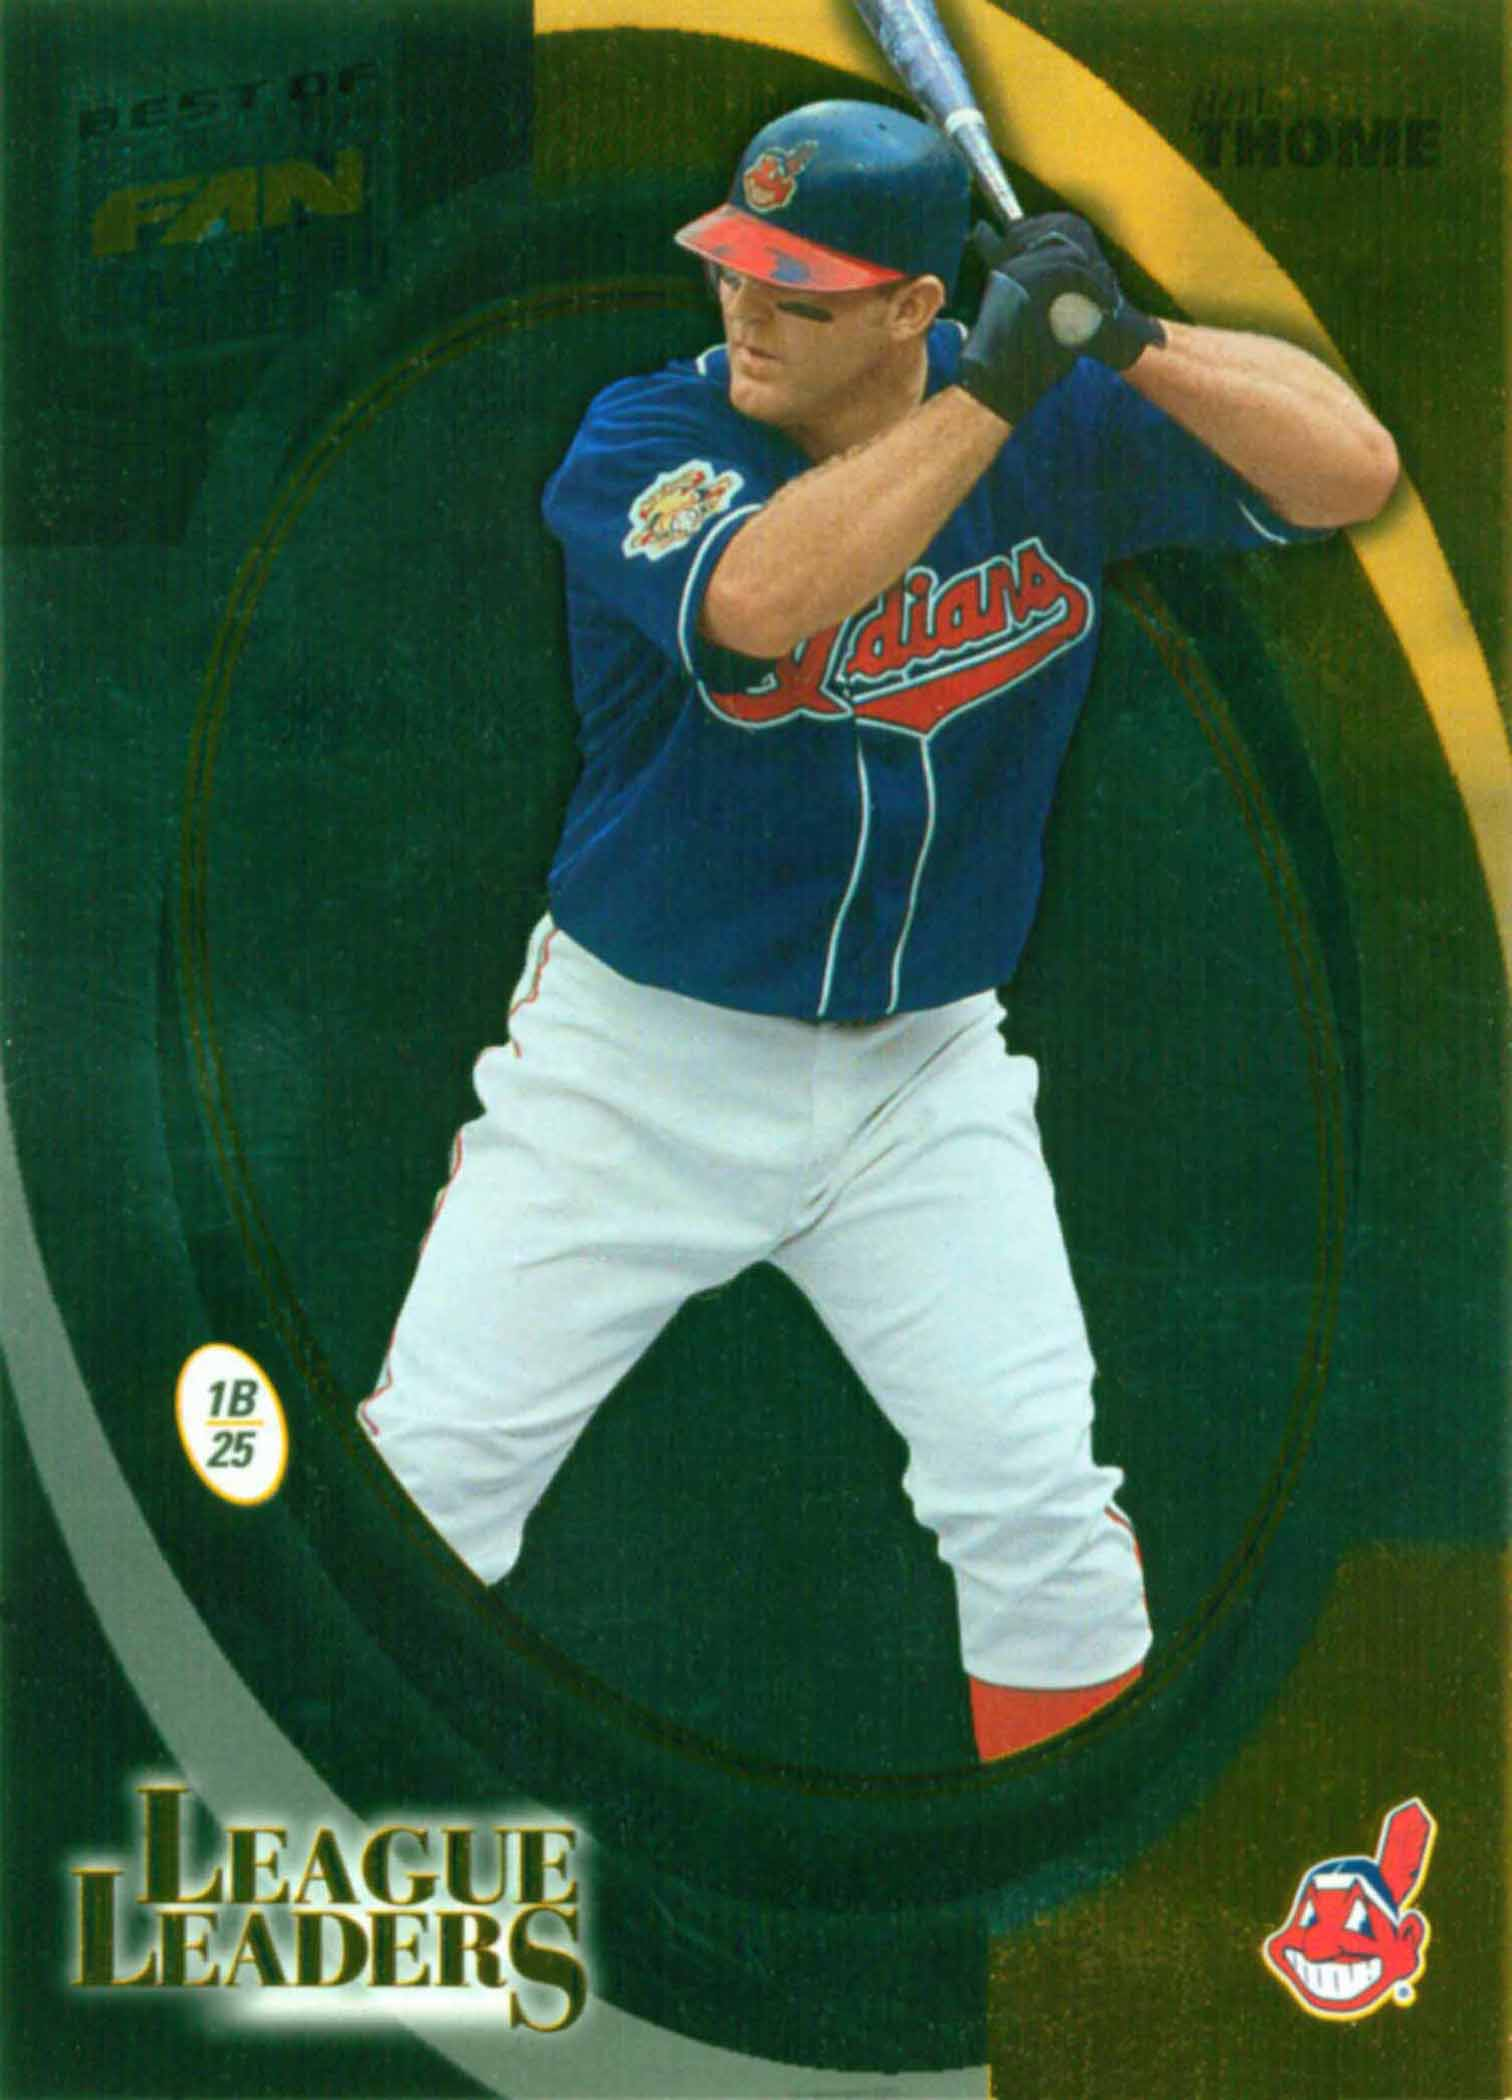 2002 Donruss Best of Fan Club League Leaders